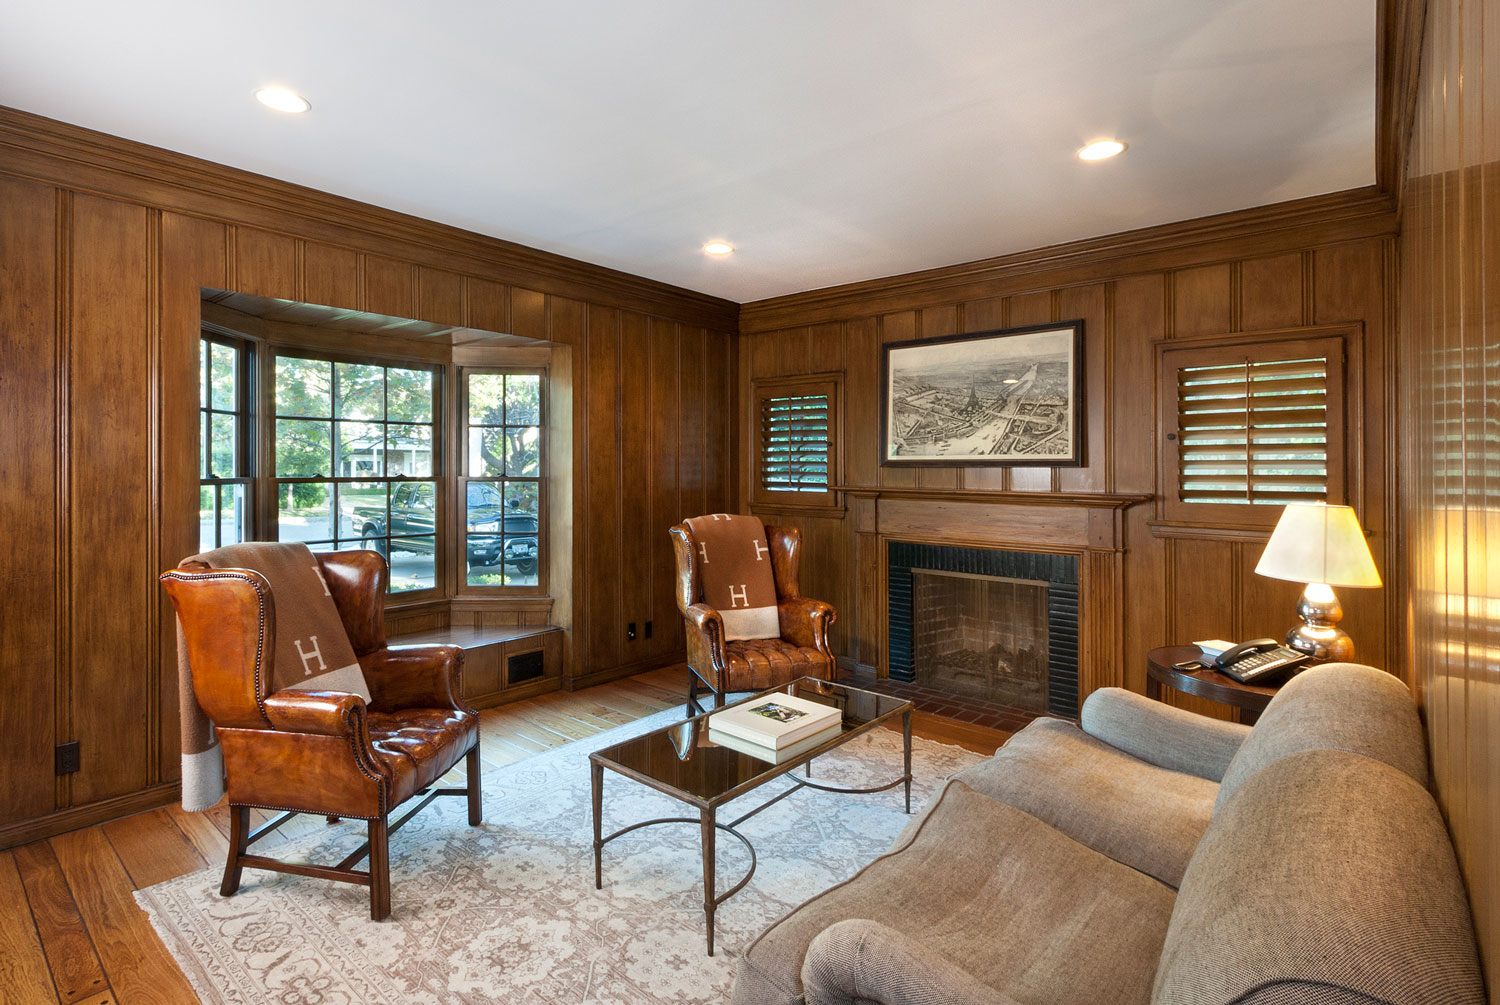 08-wood-paneled-office-fireplace-window-seat-gary-drake-general-contractor.jpg